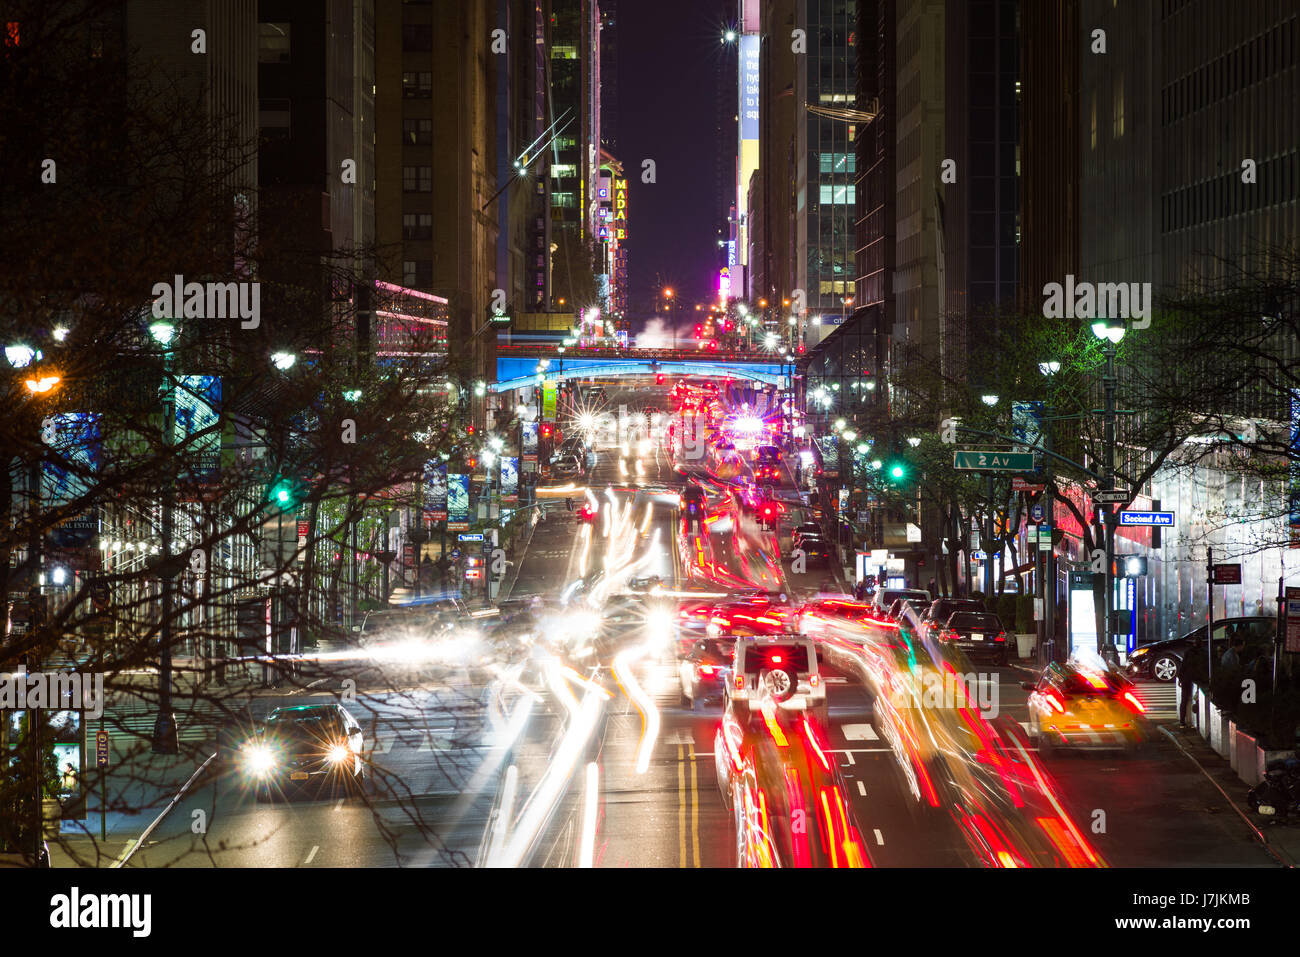 Night Time Long Exposure View Down 42nd Street To Pershing Square With Busy Traffic On Road, New York - Stock Image